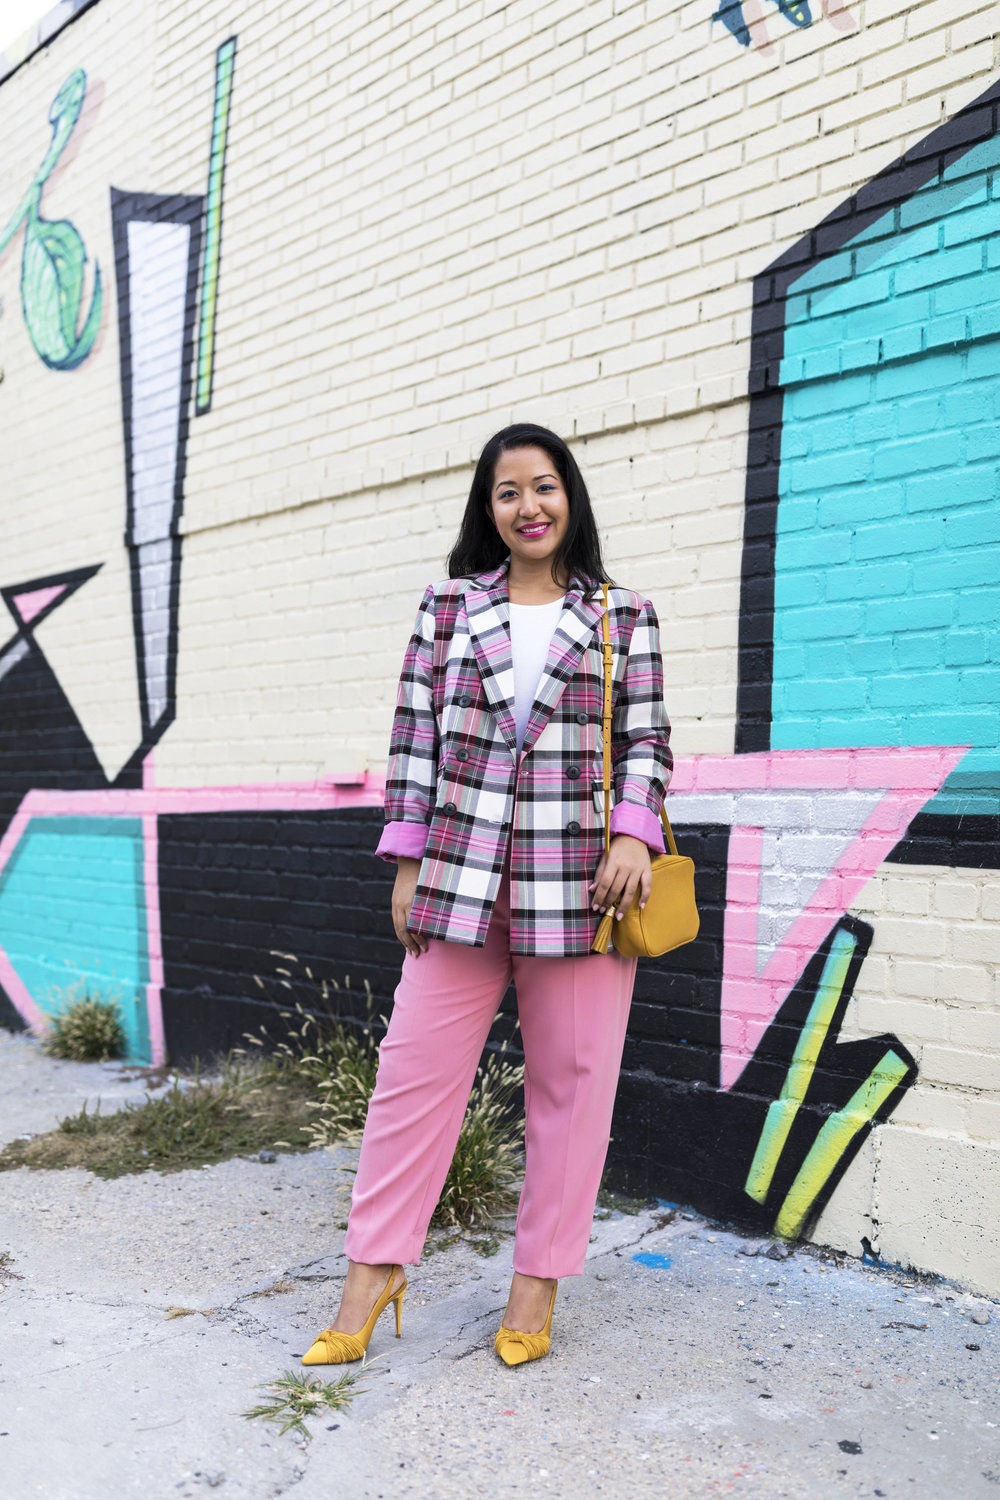 Krity S x Plaid Pink Suit2.jpg